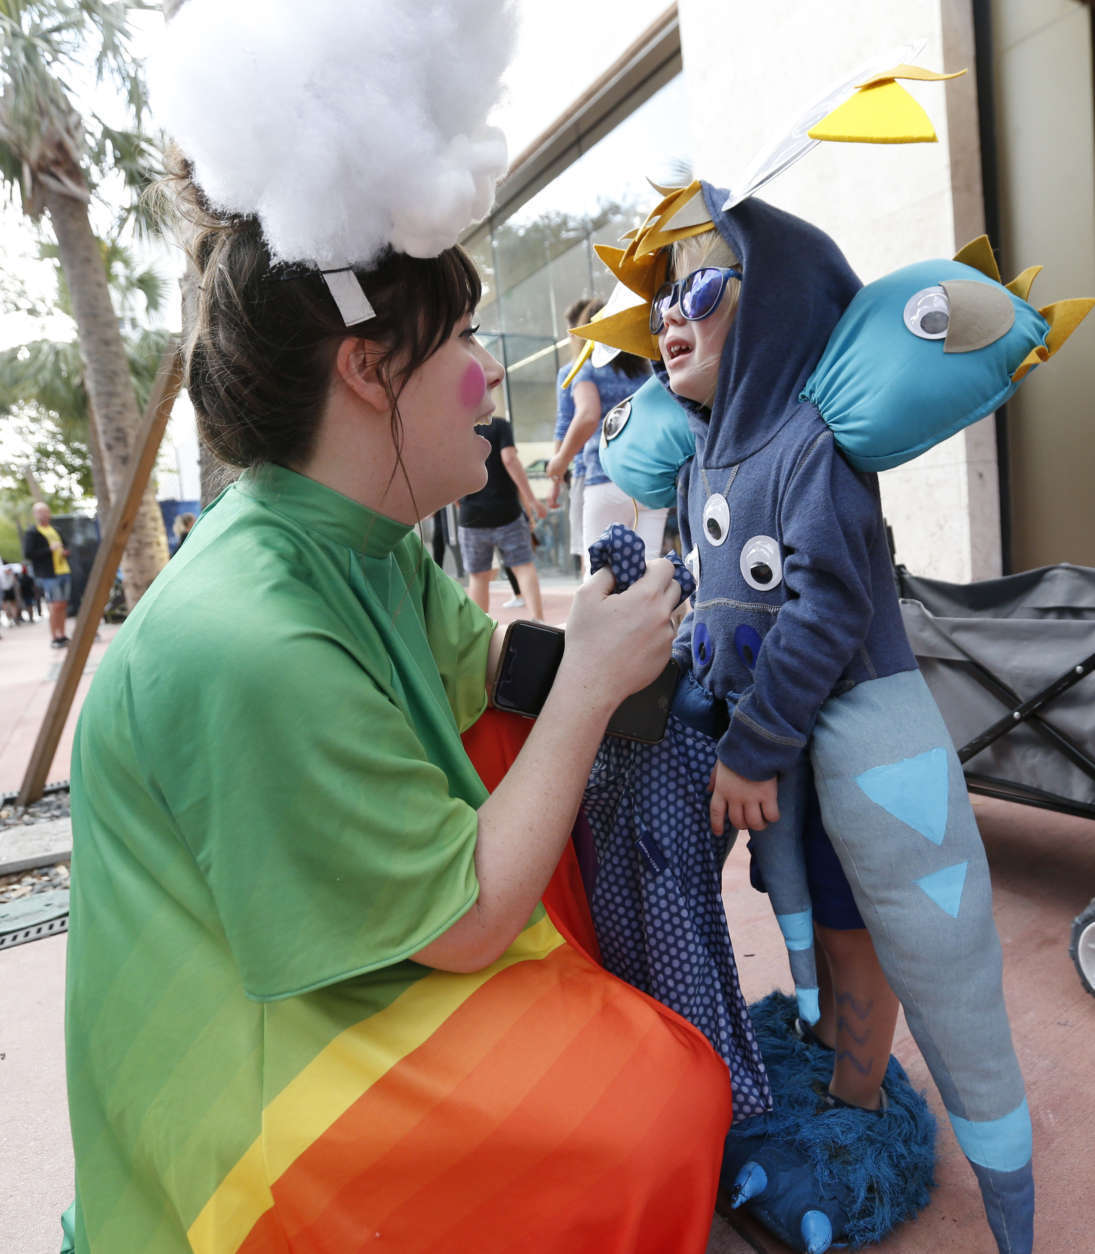 Dressed as a rainbow, Caroline Sayre helps her son Navy, 3, put on his blue monster costume as they prepare to trick-or-treater along the Lincoln Road pedestrian mall for Halloween, Tuesday, Oct. 31, 2017, in the South Beach neighborhood of Miami Beach, Fla. (AP Photo/Wilfredo Lee)